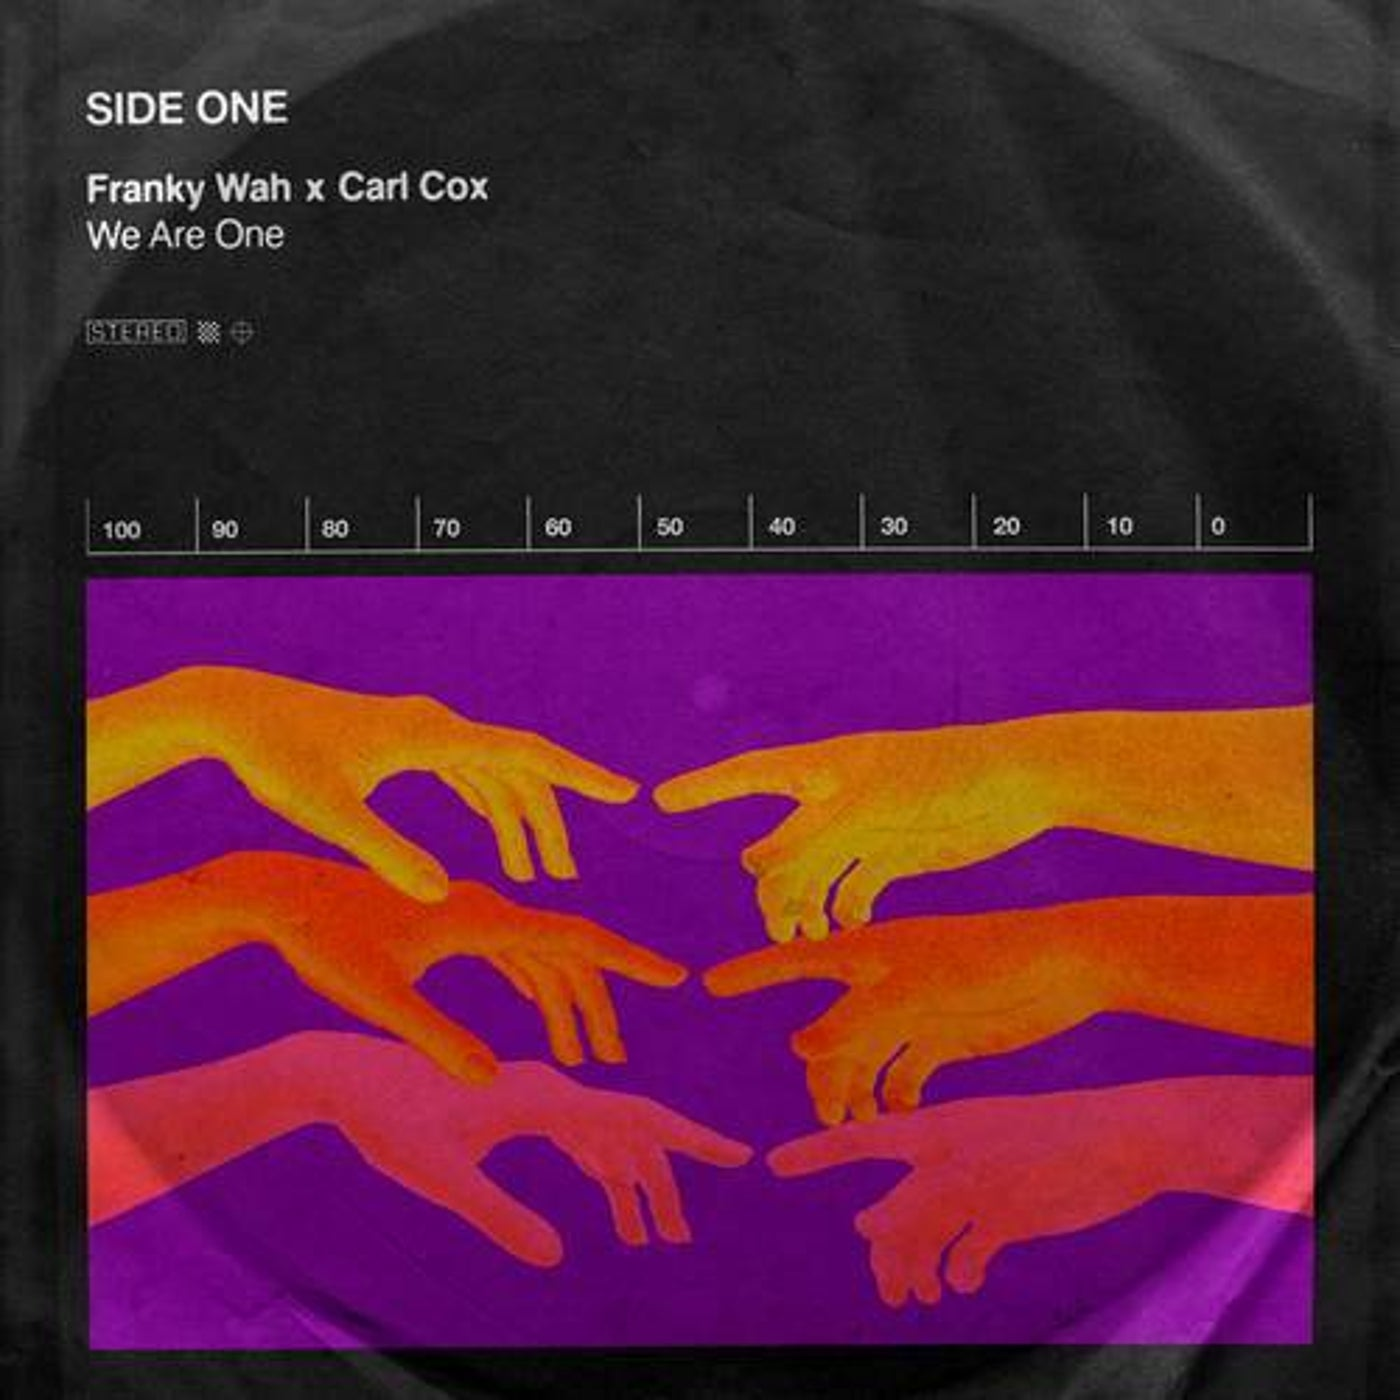 We Are One (Extended)